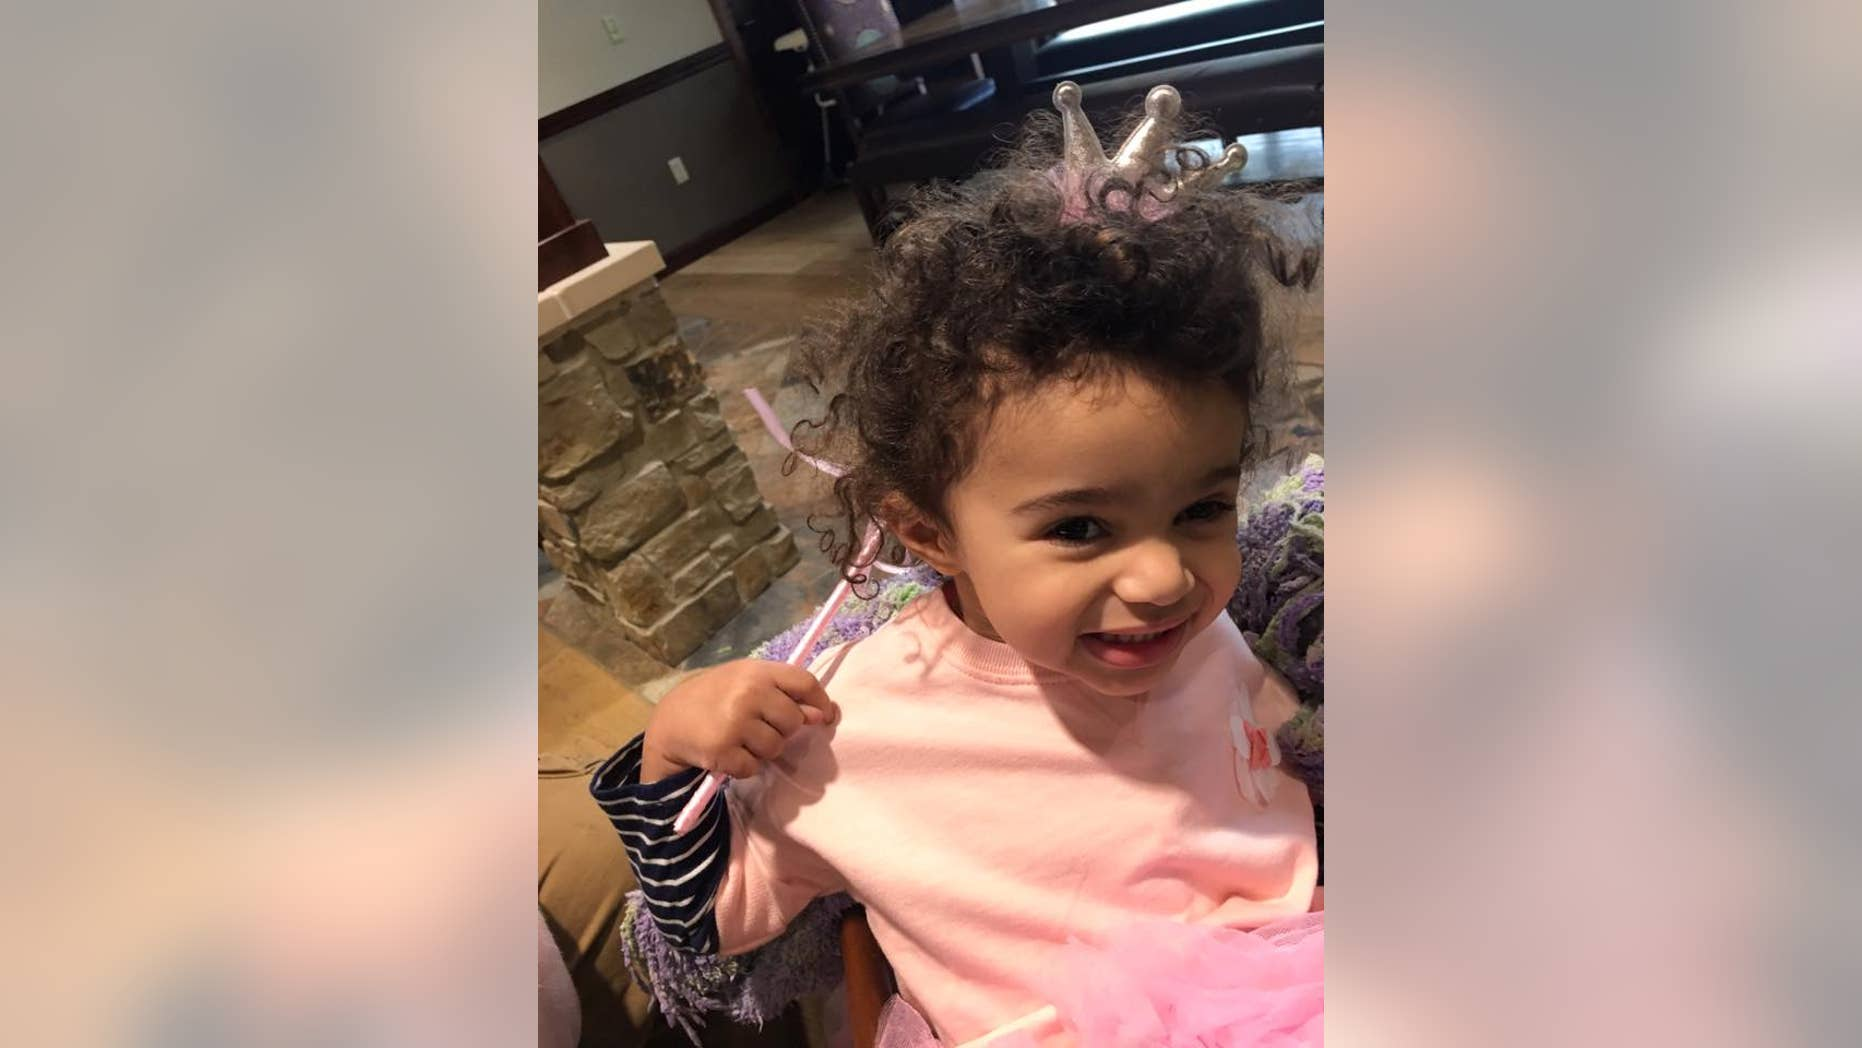 When 2-year-old McKinley Norton started walking sideways, her mother, Kourtney, took her to the pediatrician, who mistakenly suspected an eye infection.